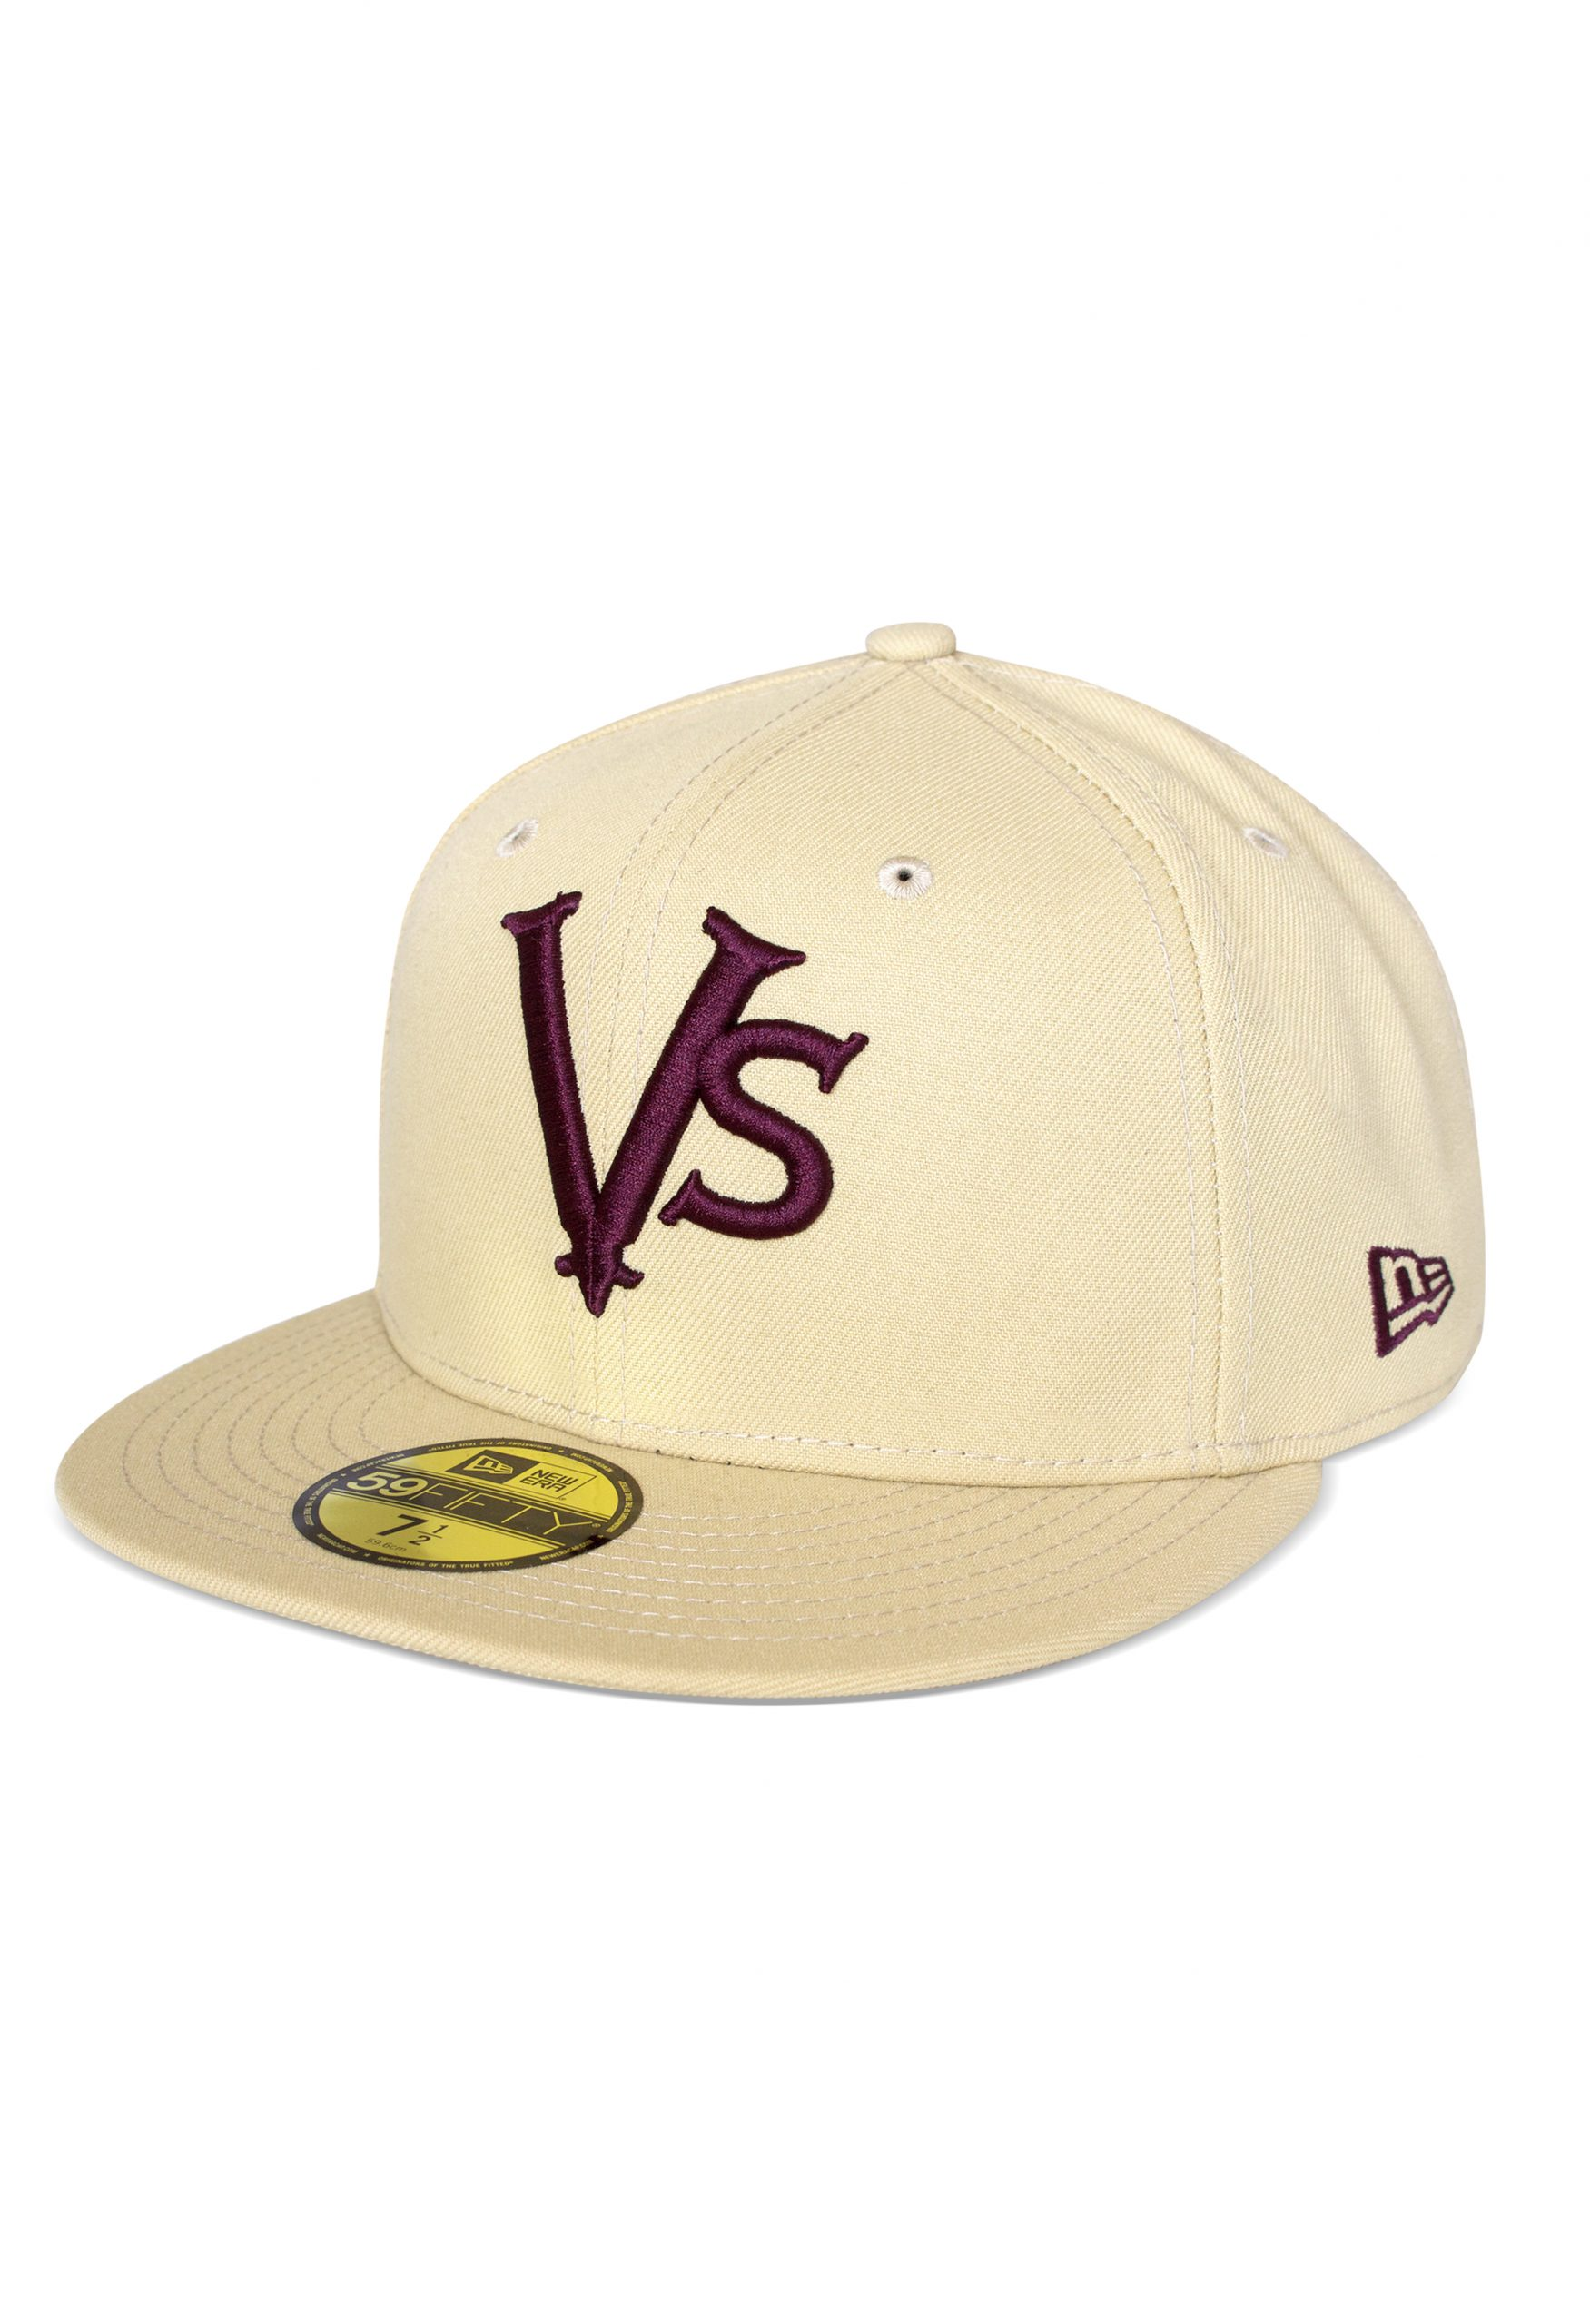 VS Vegas Gold New Era 59Fifty Fitted Cap